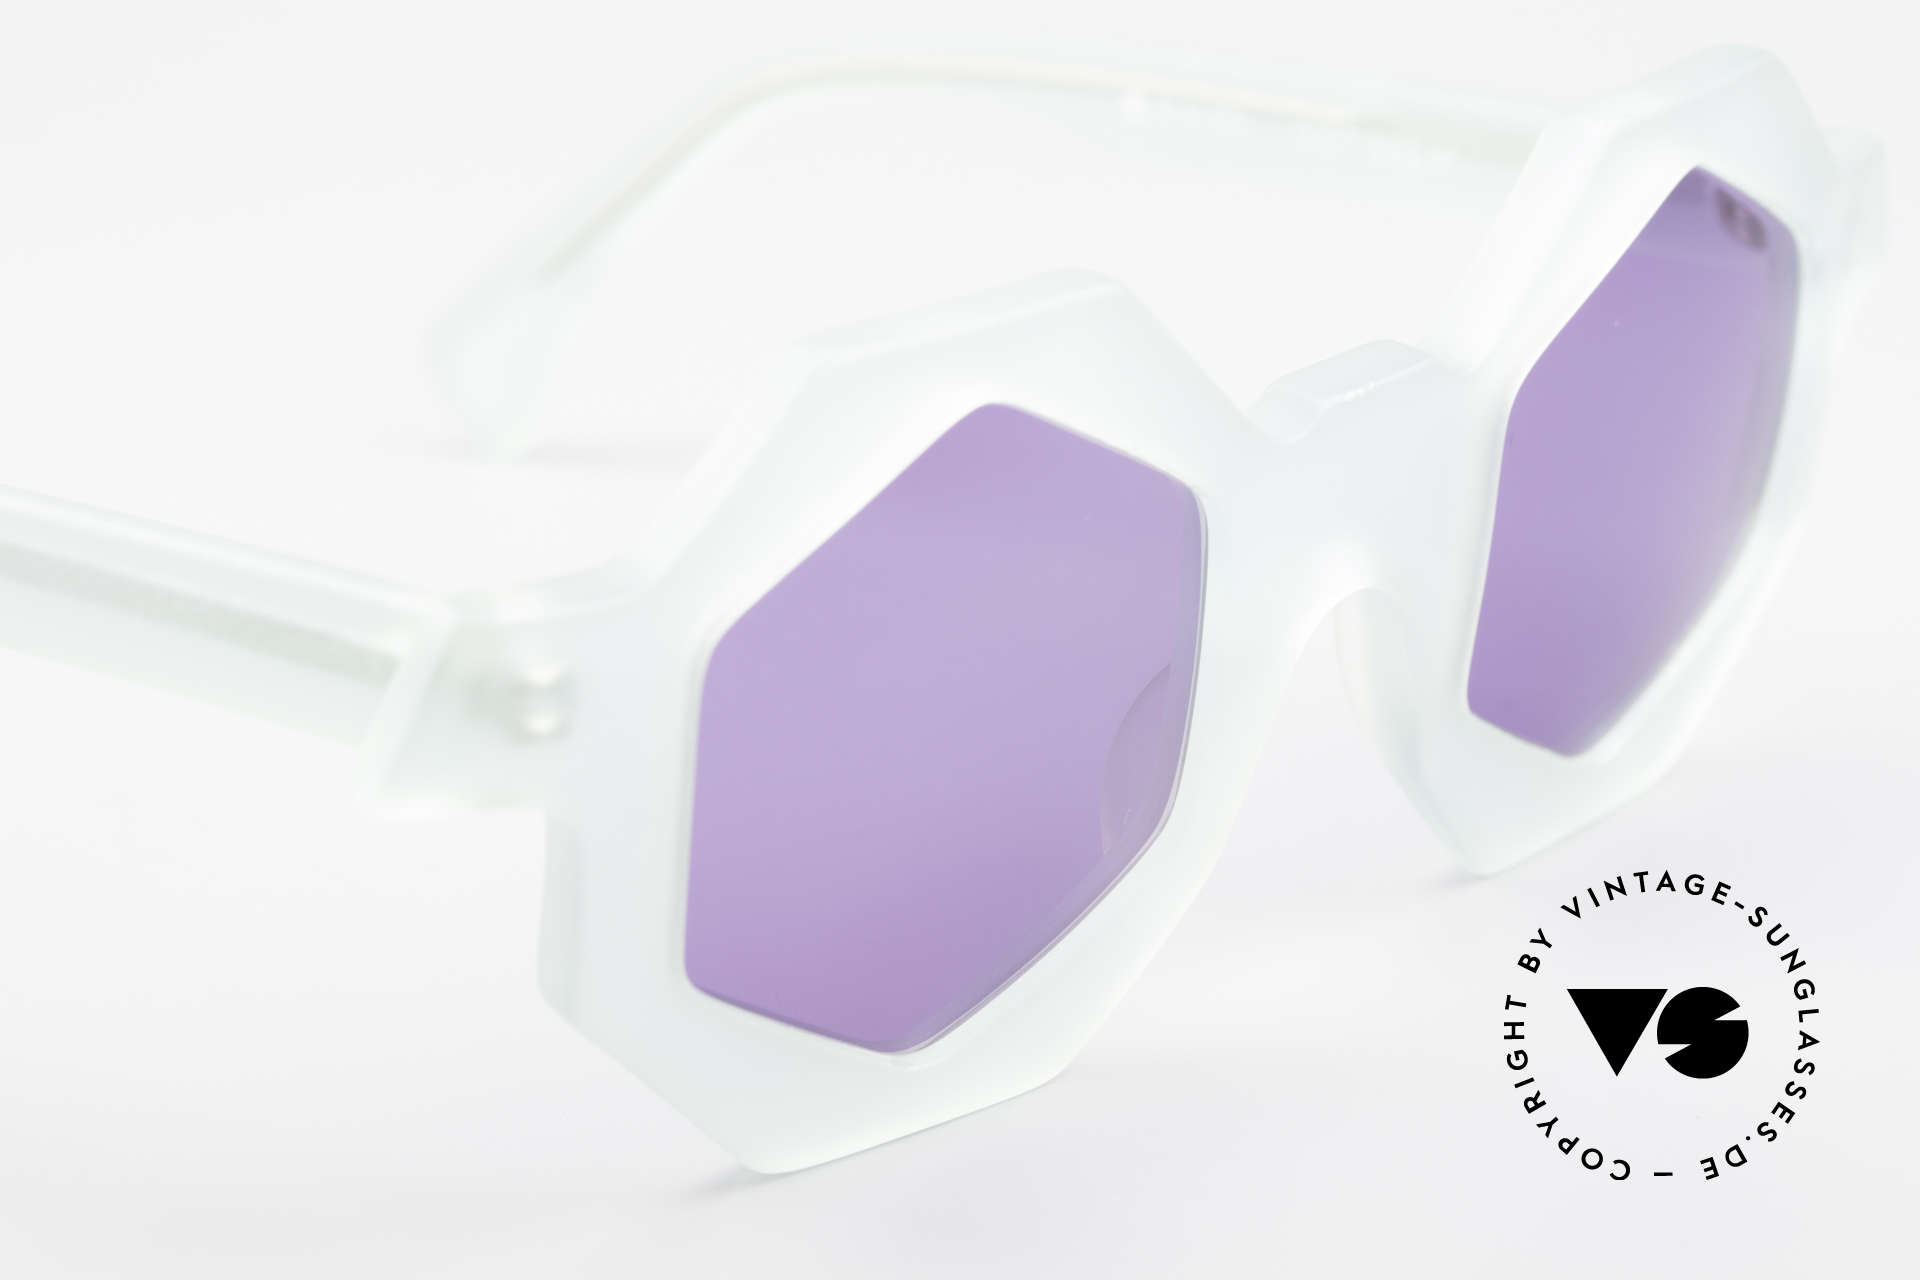 Alain Mikli 0157 / 932 Hexagonal Sunglasses 80's, never worn (like all our RARE vintage sunglasses), Made for Women